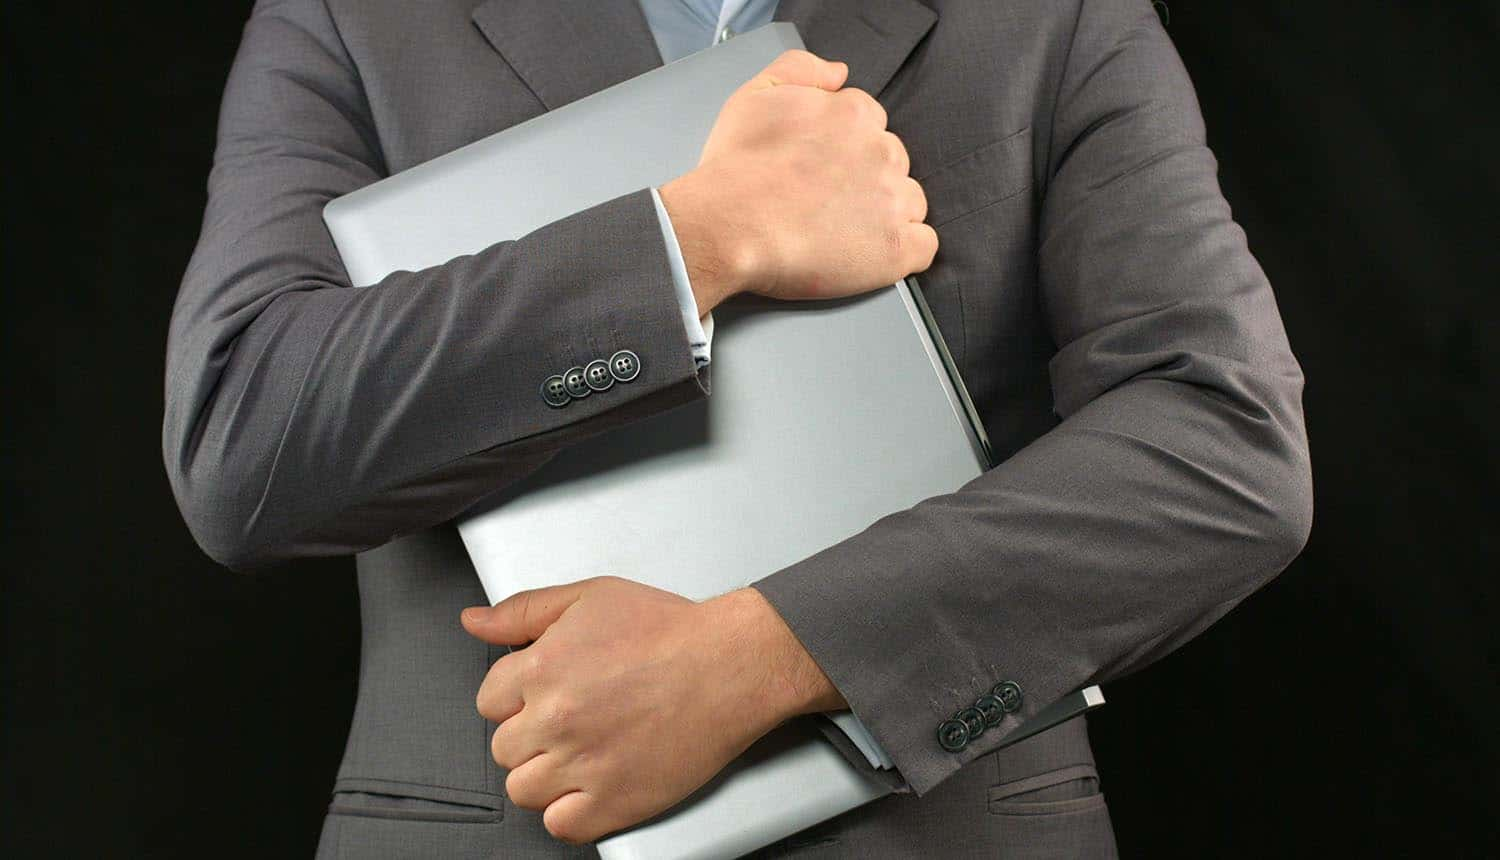 Man in business suit holding laptop computer tight showing data privacy concerns